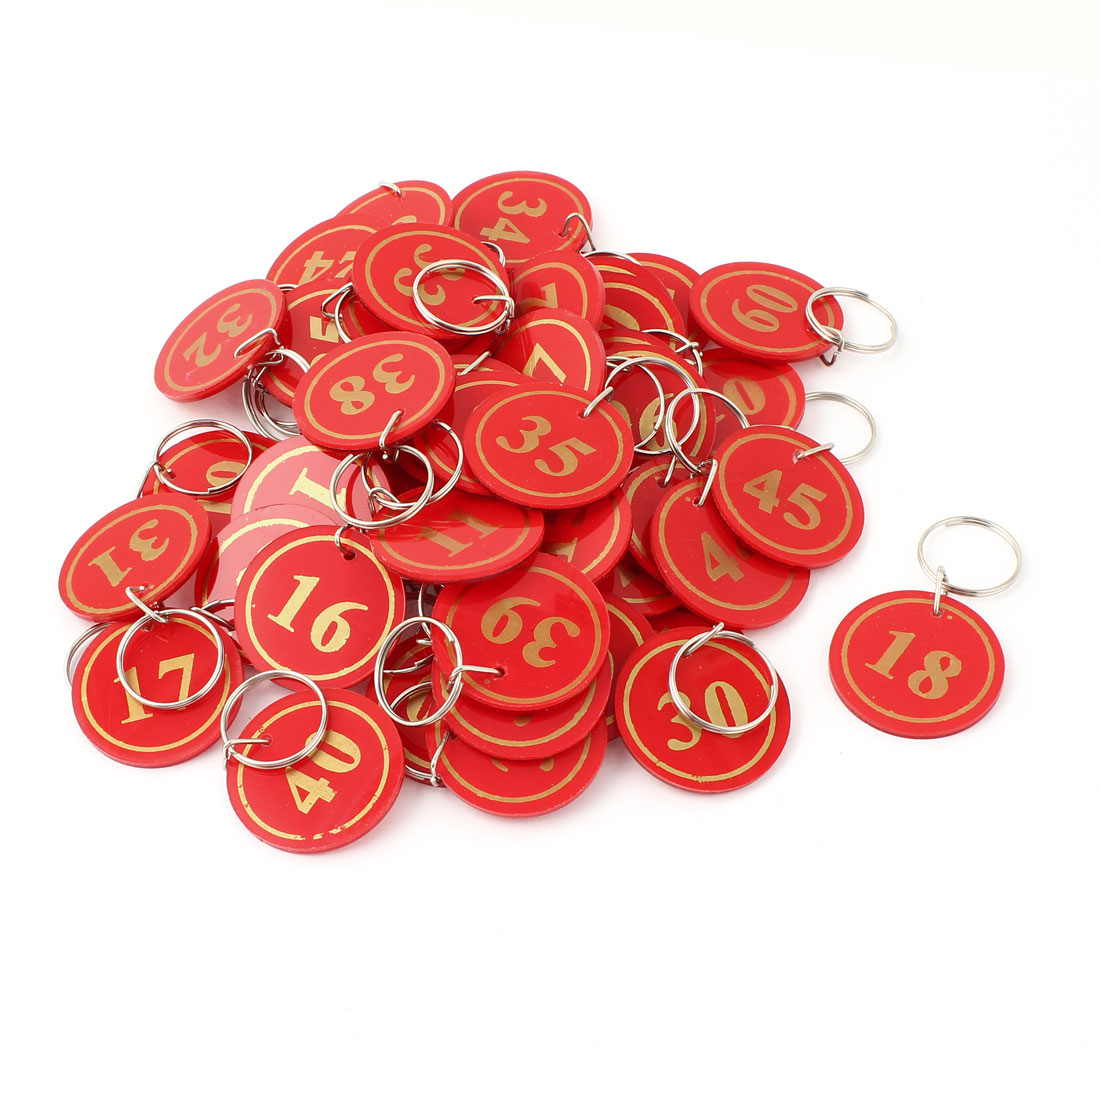 50Pcs Red Plastic Round Suitcase Luggage Supermarket Stock Metal Split Ring Key Tags